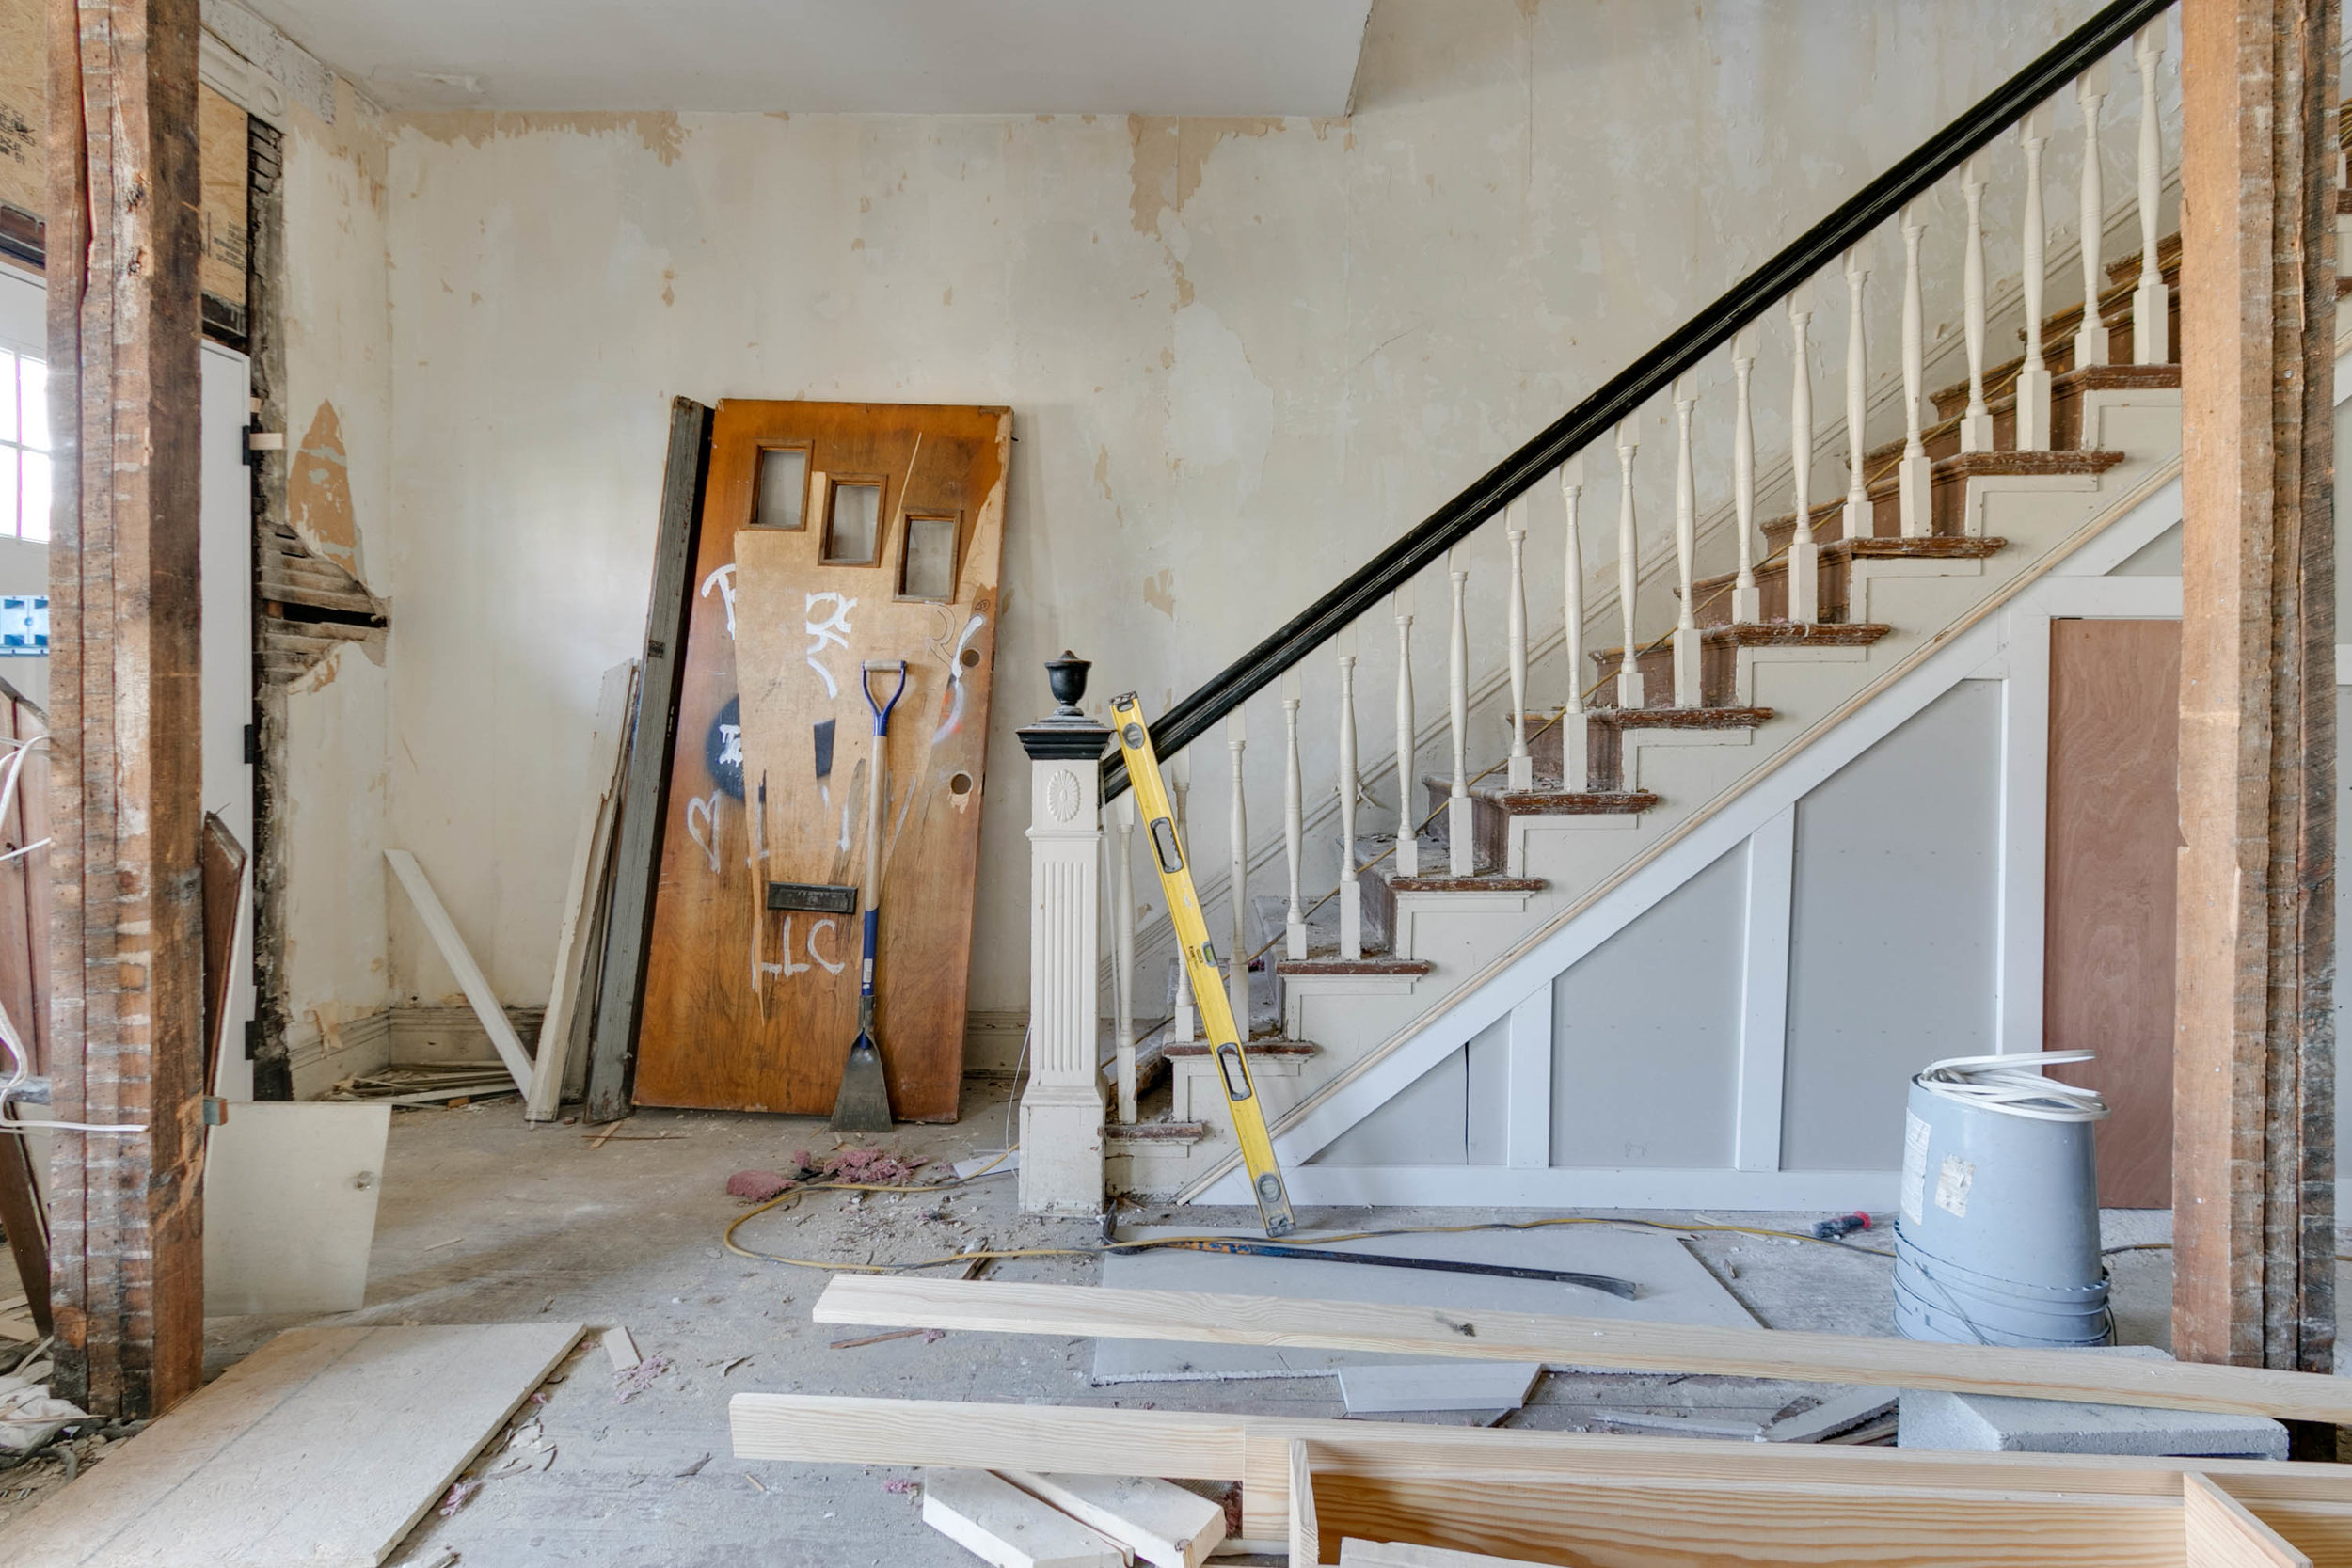 Before Photos $75.00 - Ready to start a renovation project? What better way to measure your progress than before photos? Use them for marketing or them share with friends. Be sure to book an appointment for a real estate package once the project is complete! Approx 15 photos.